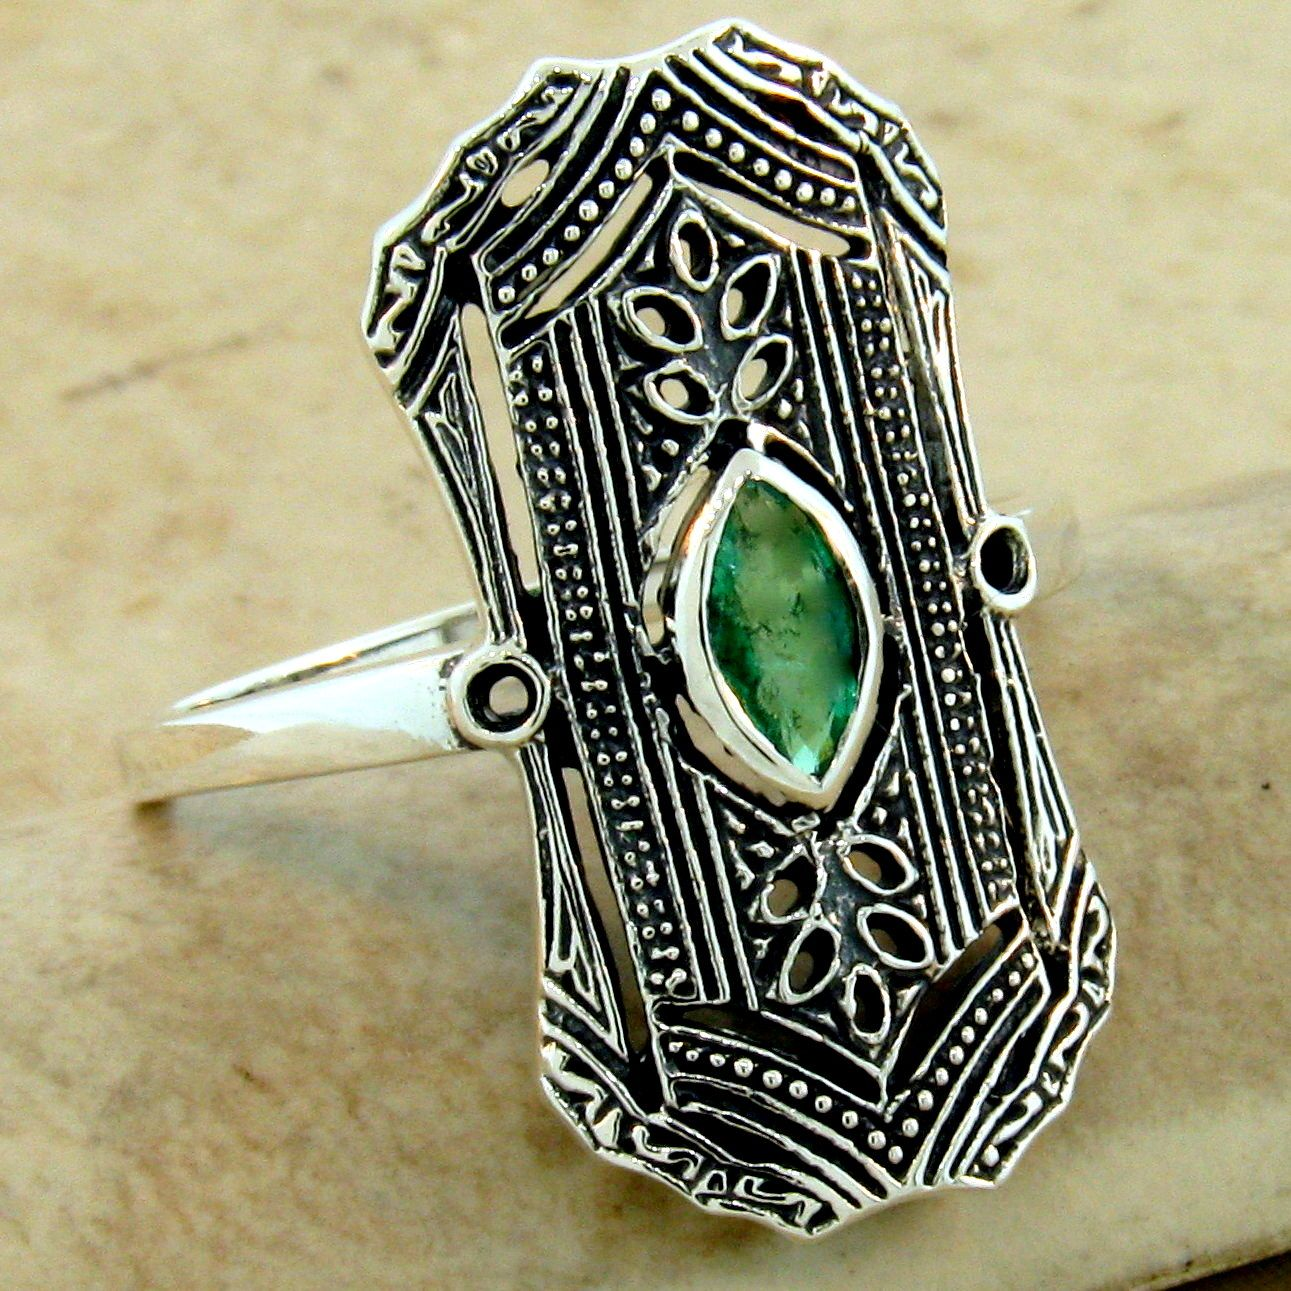 Rings Genuine Emerald Antique Art Deco Style 925 Sterling Silver Ring Size 6 75 363 Jewellery Watches Fortizzamalta Com